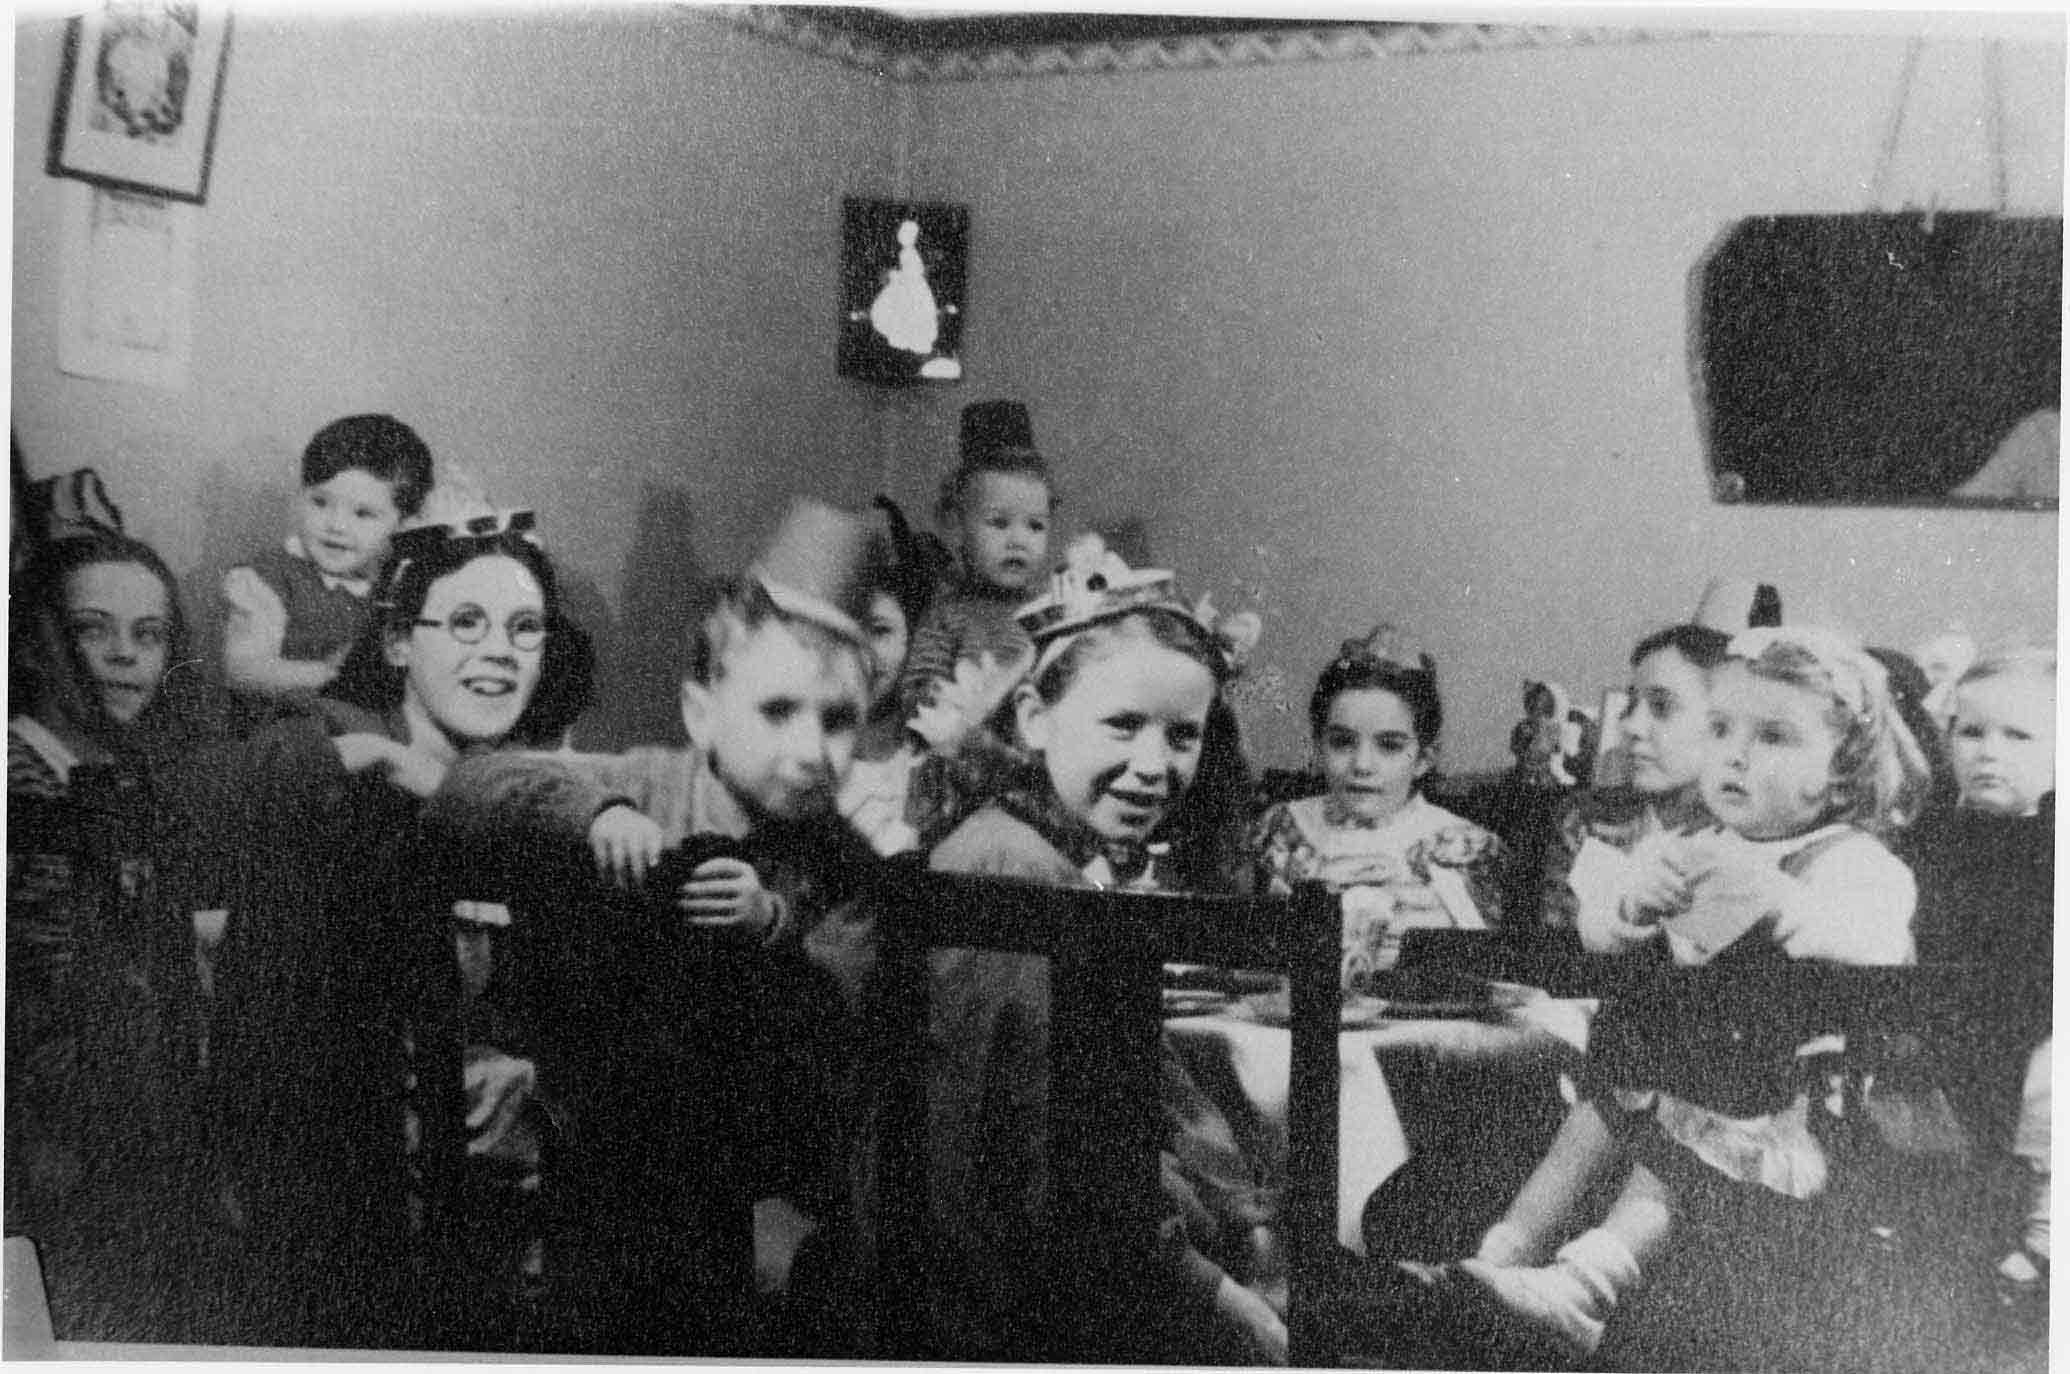 Children's Party c.1948